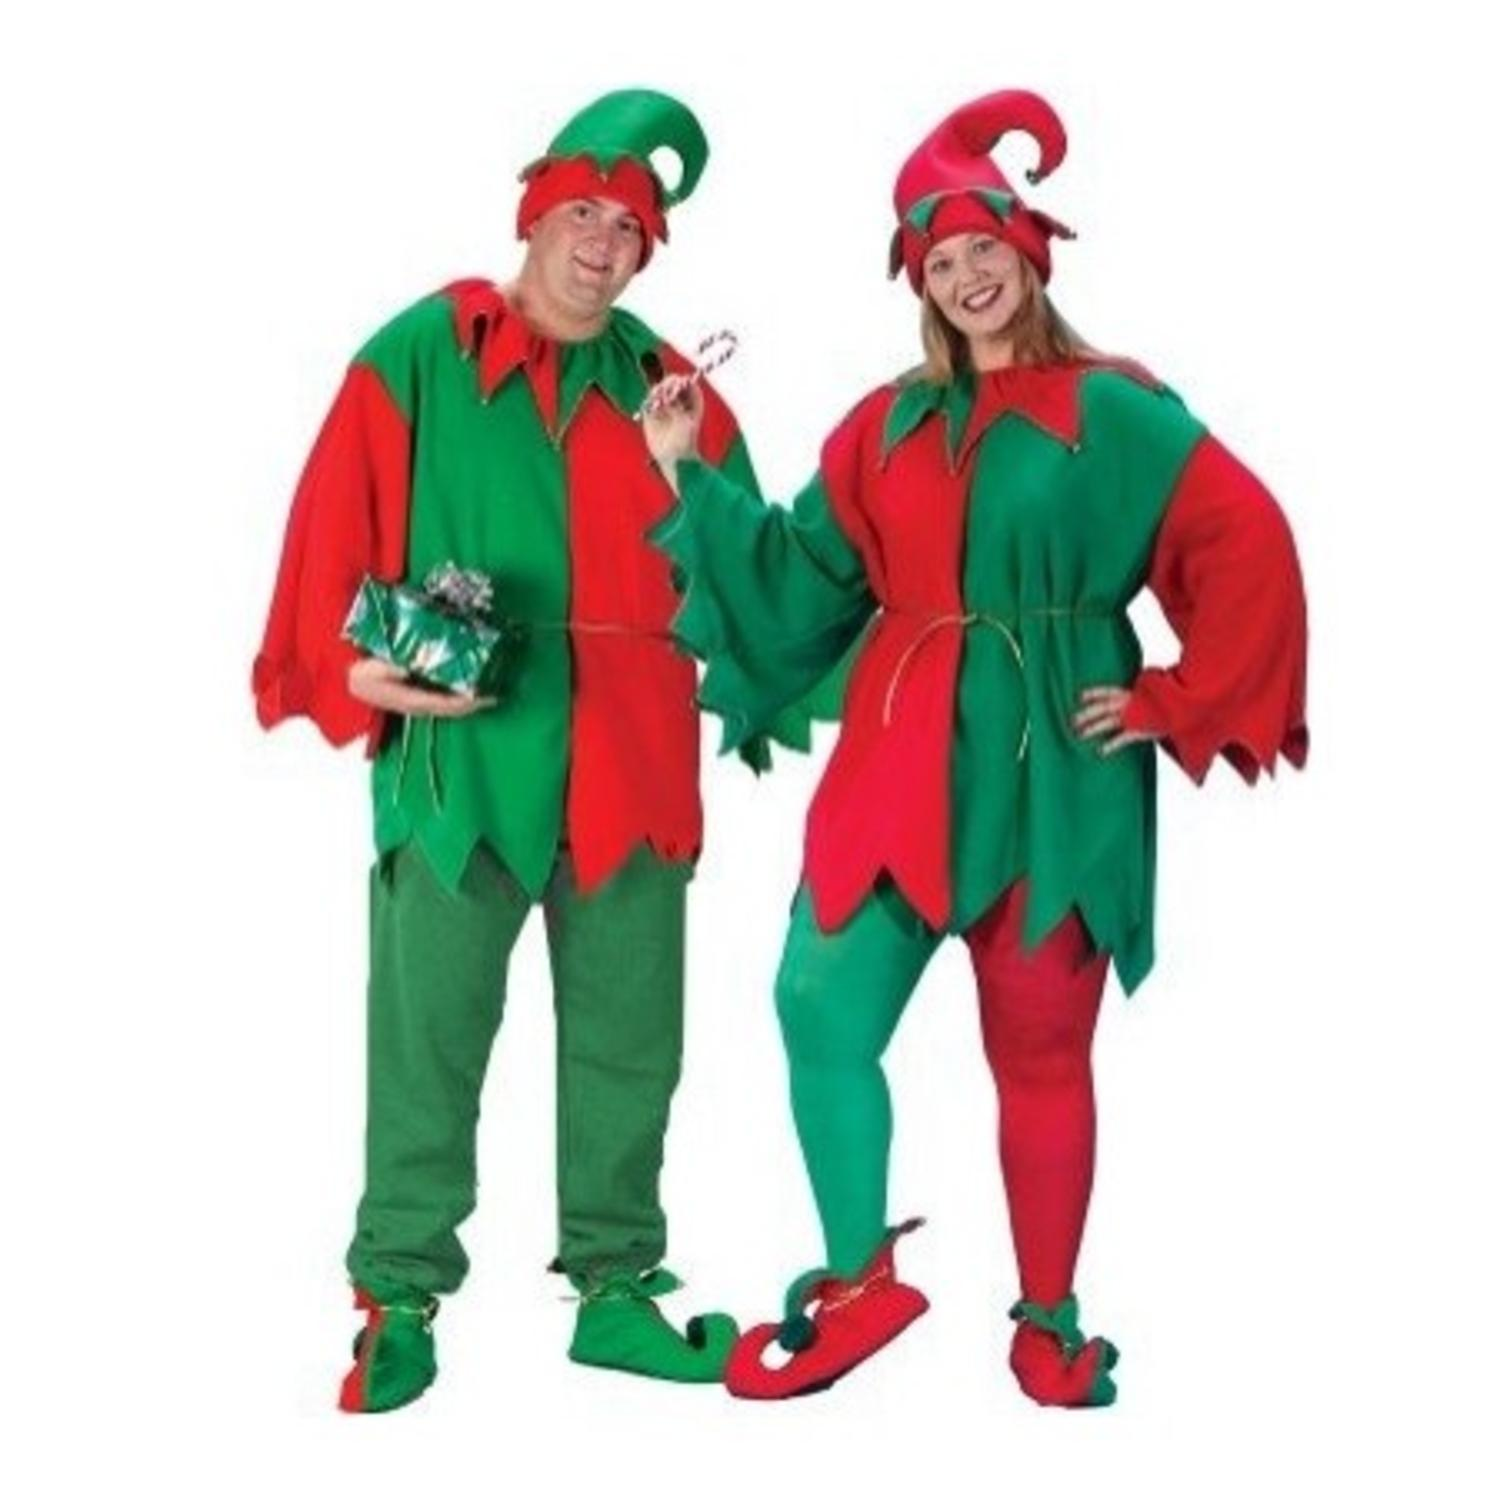 red and green unisex adult 5 piece christmas elf costume set adult menswomens plus size